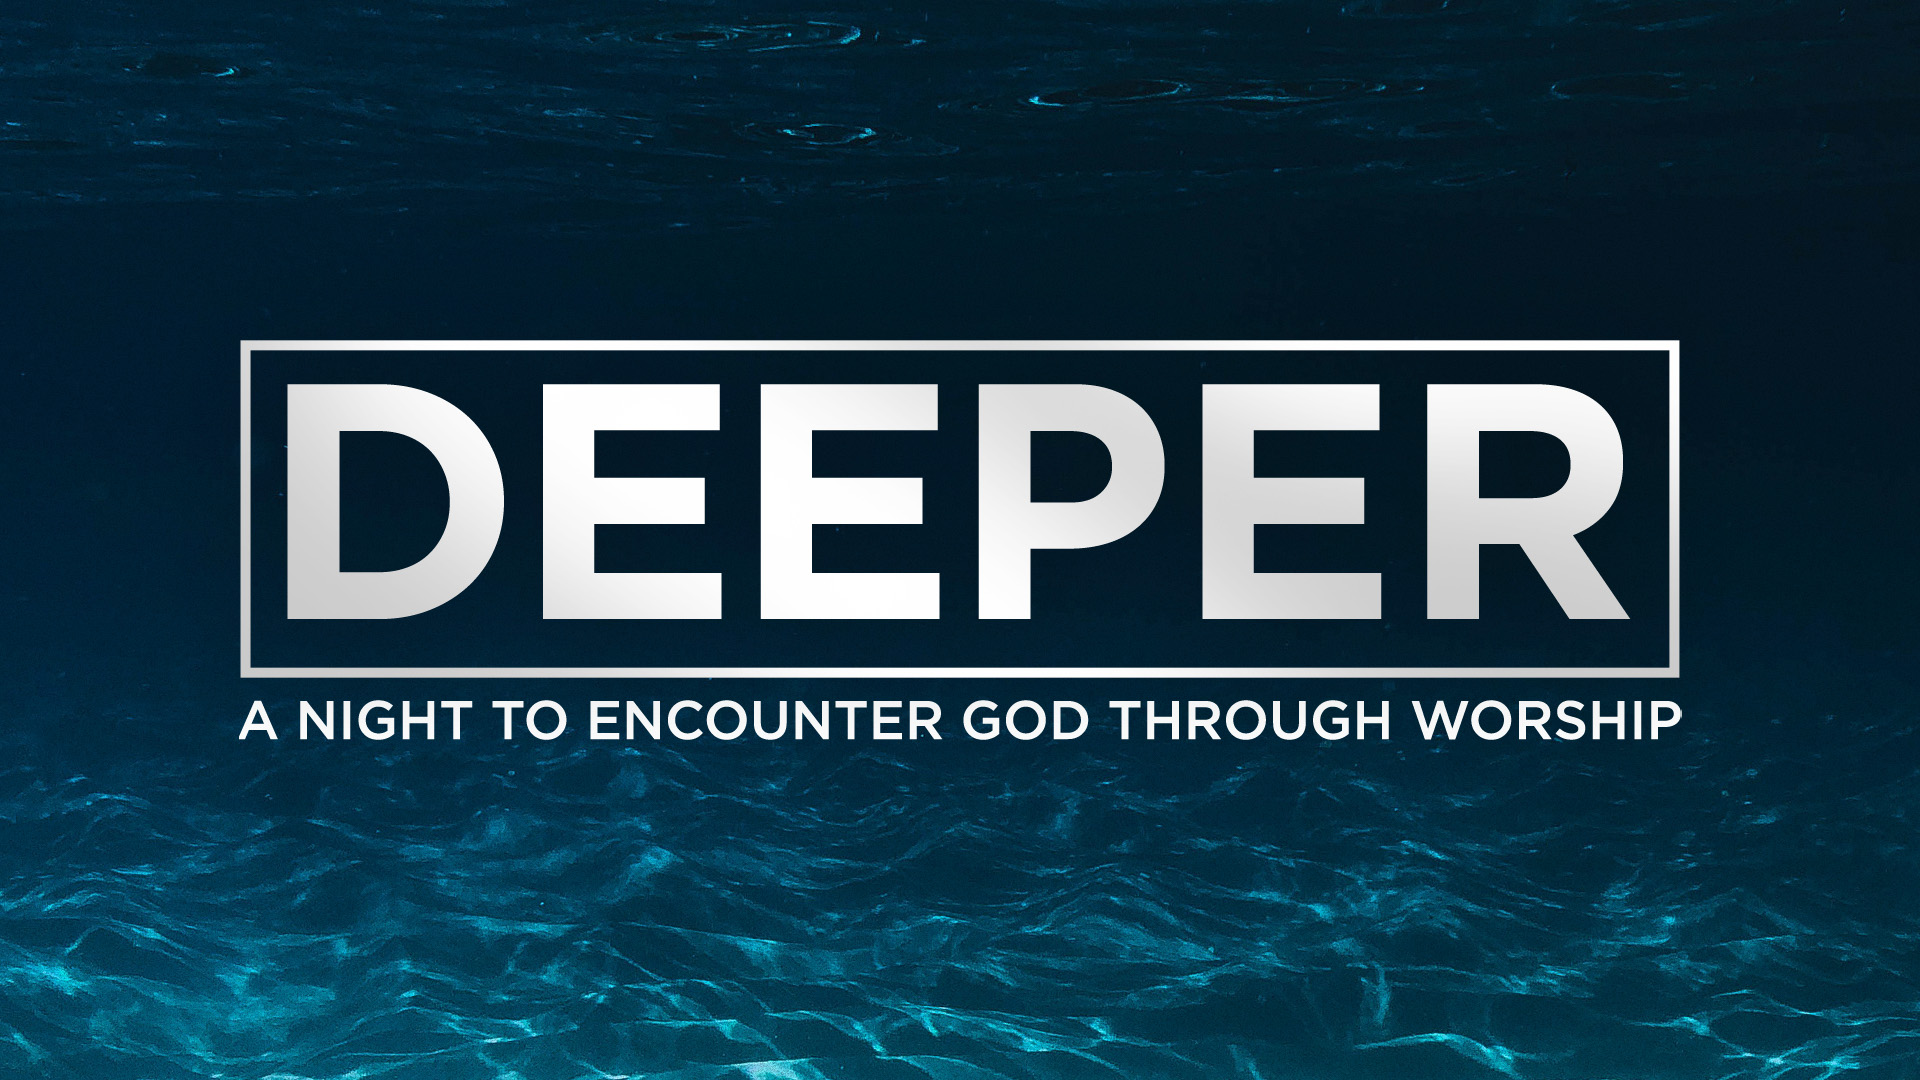 deeper-night-of-worship-1